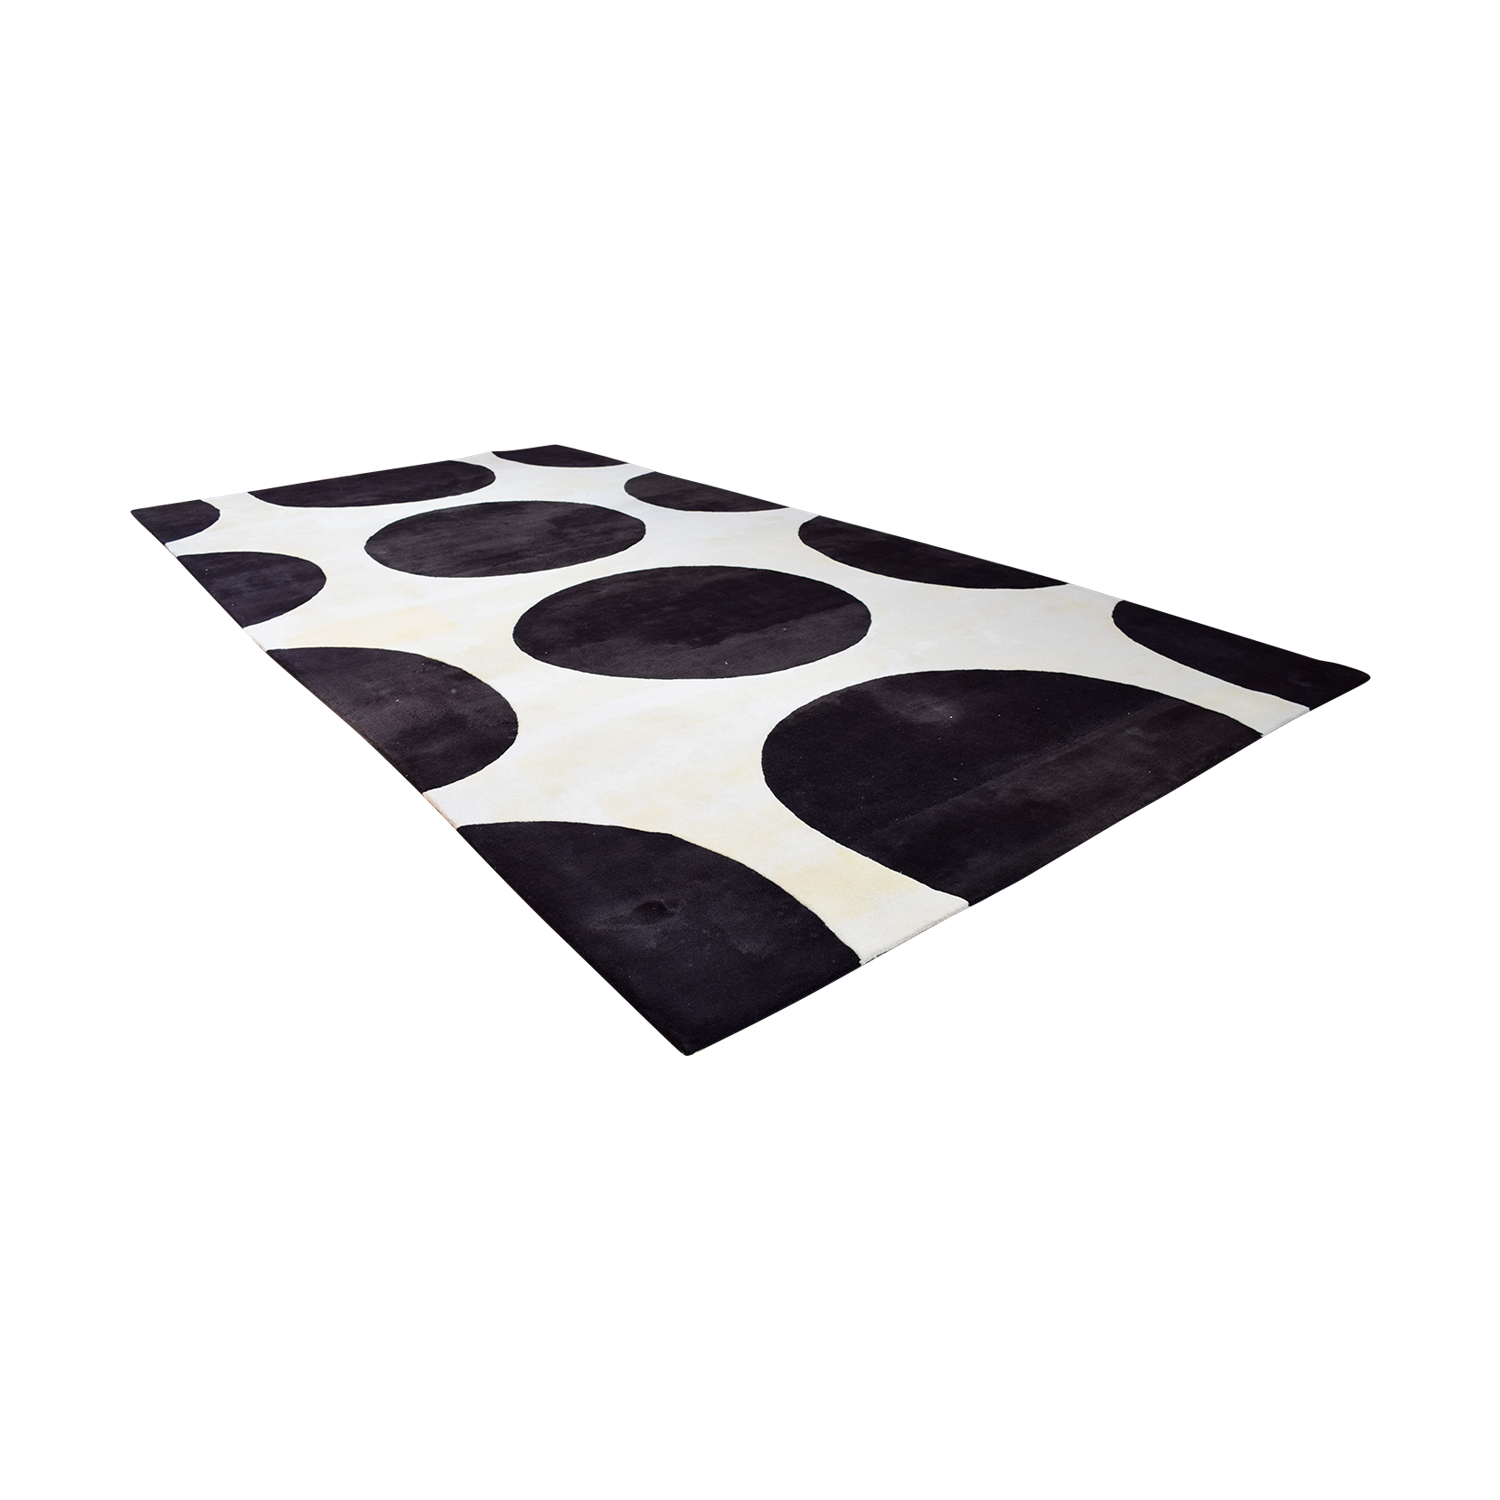 Gandia Blasco Brown and Cream Polkadot Rug sale